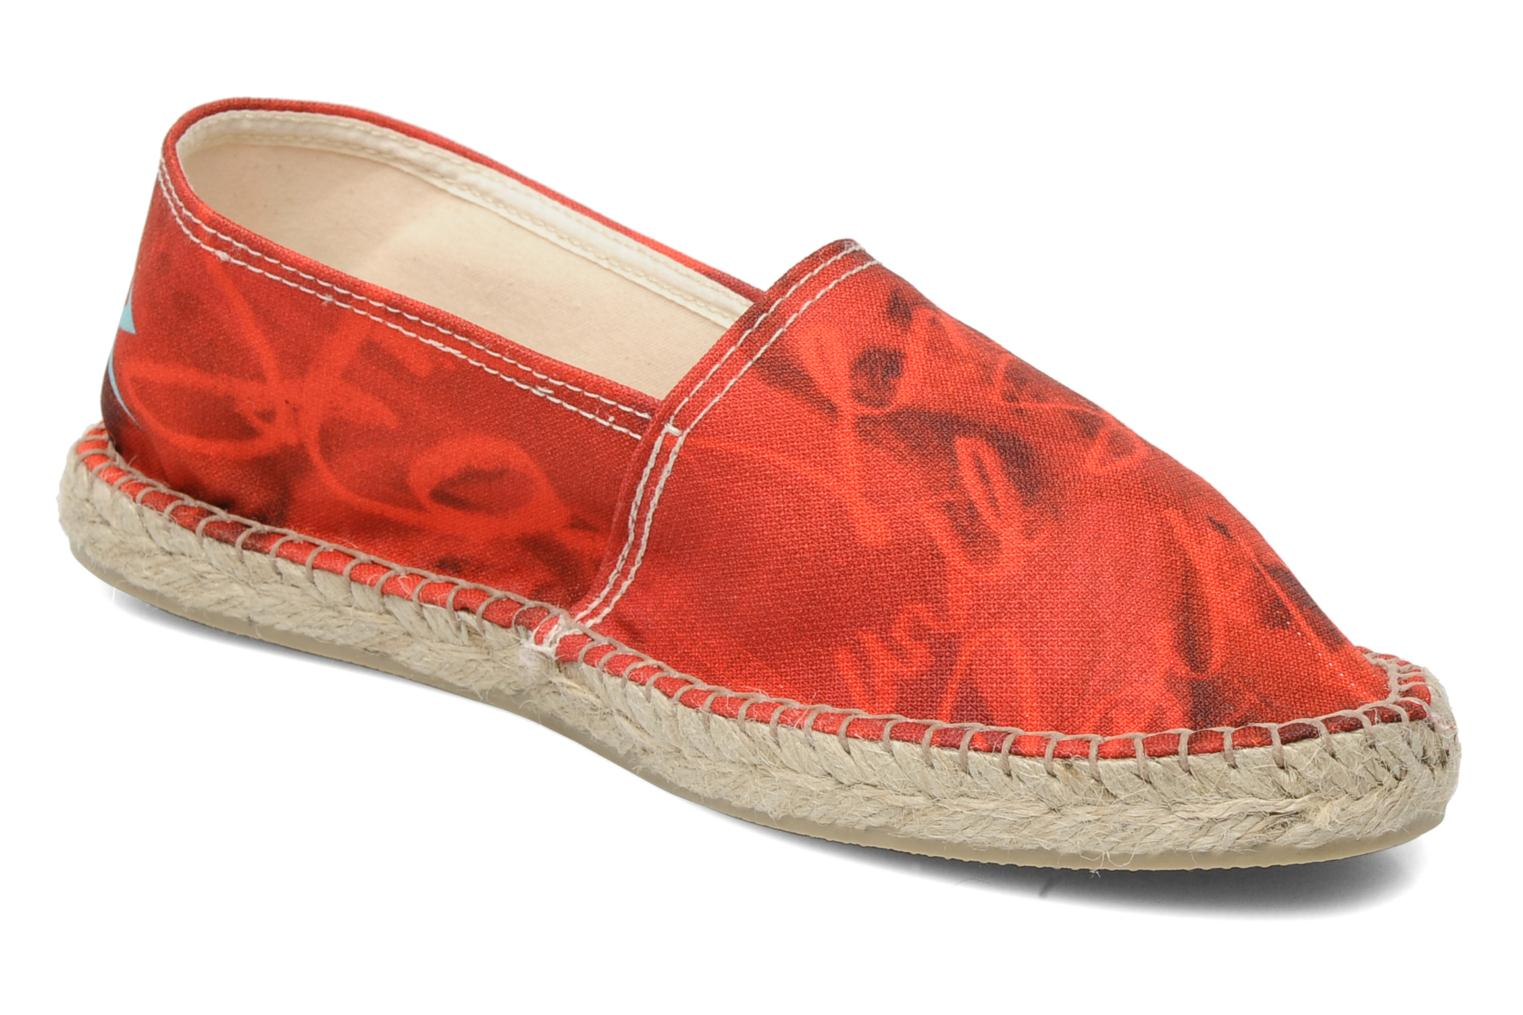 Marques Chaussure femme String Republic femme Jesus is Lord by Sockho W Rouge